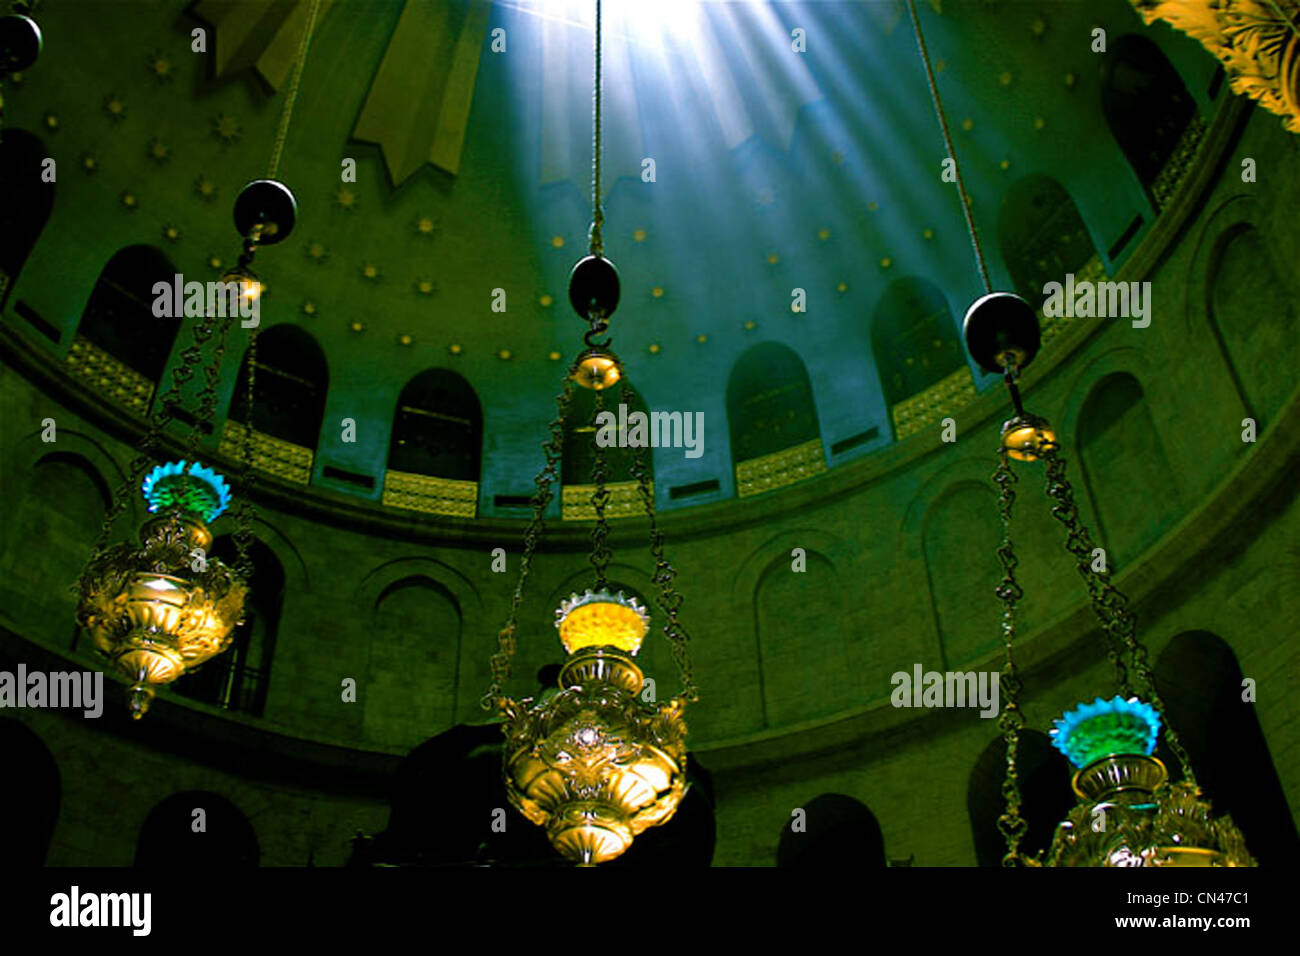 Ethereal view of the dome of the Church of the Holy Sepulchre Jerusalem Stock Photo